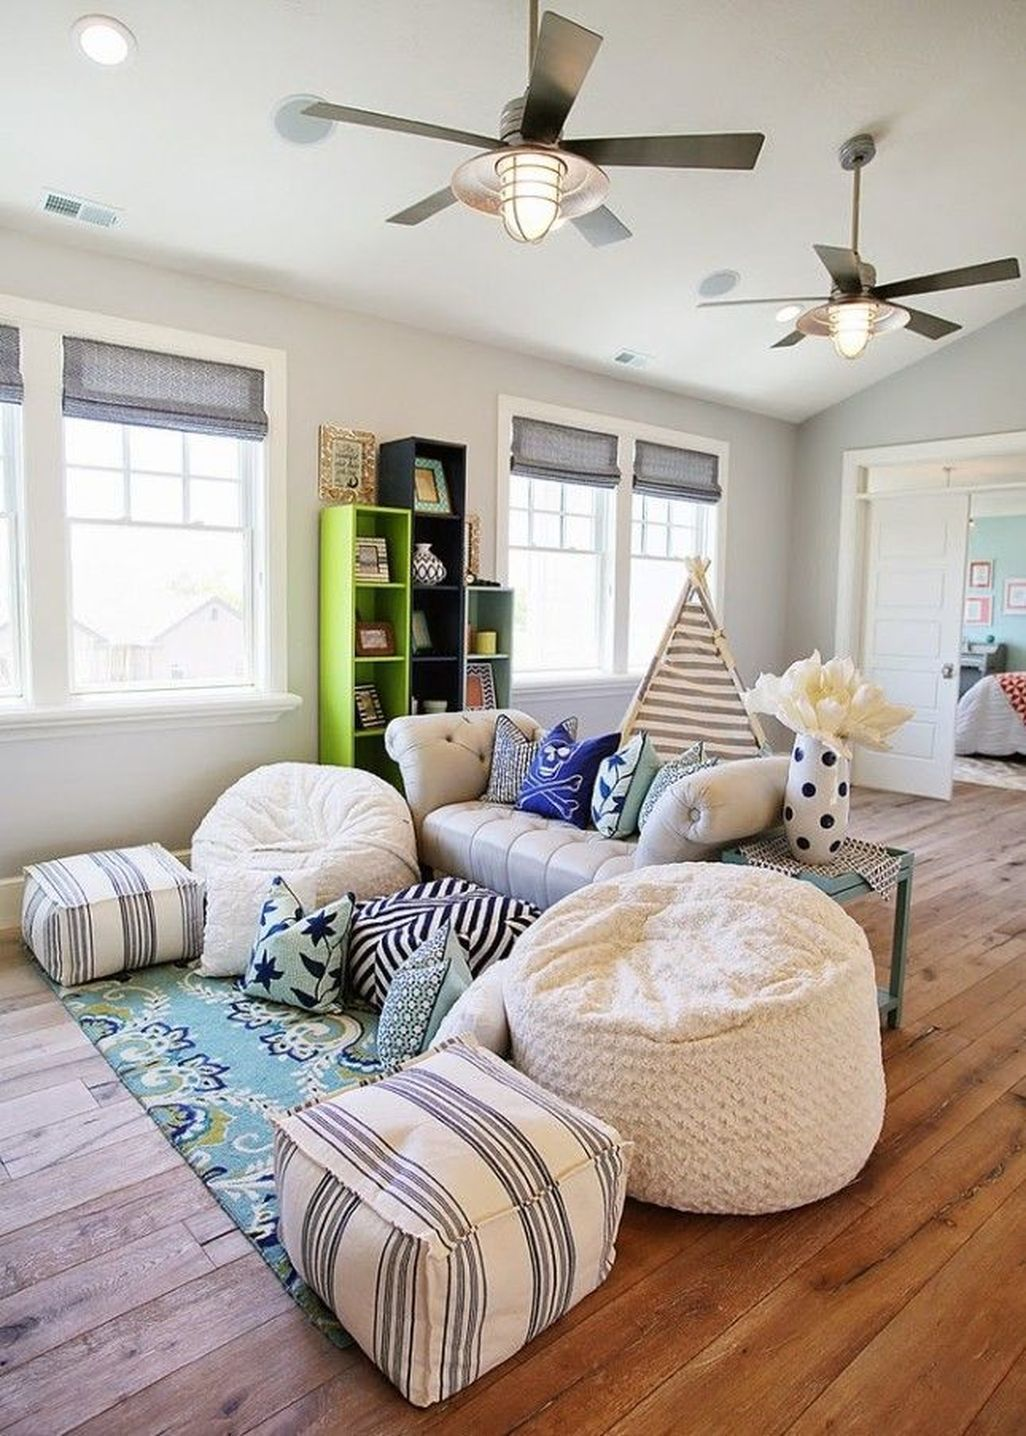 Living Room Layout Kid Friendly - 17 Most Popular Bonus Room Ideas, Designs & St...  Living Room Layout Kid Friendly – 17 Most Popular Bonus Room Ideas, Designs & Styles… #LivingRo #Bonus #Designs #Friendly #Ideas #Kid #Layout #living #popular #Room